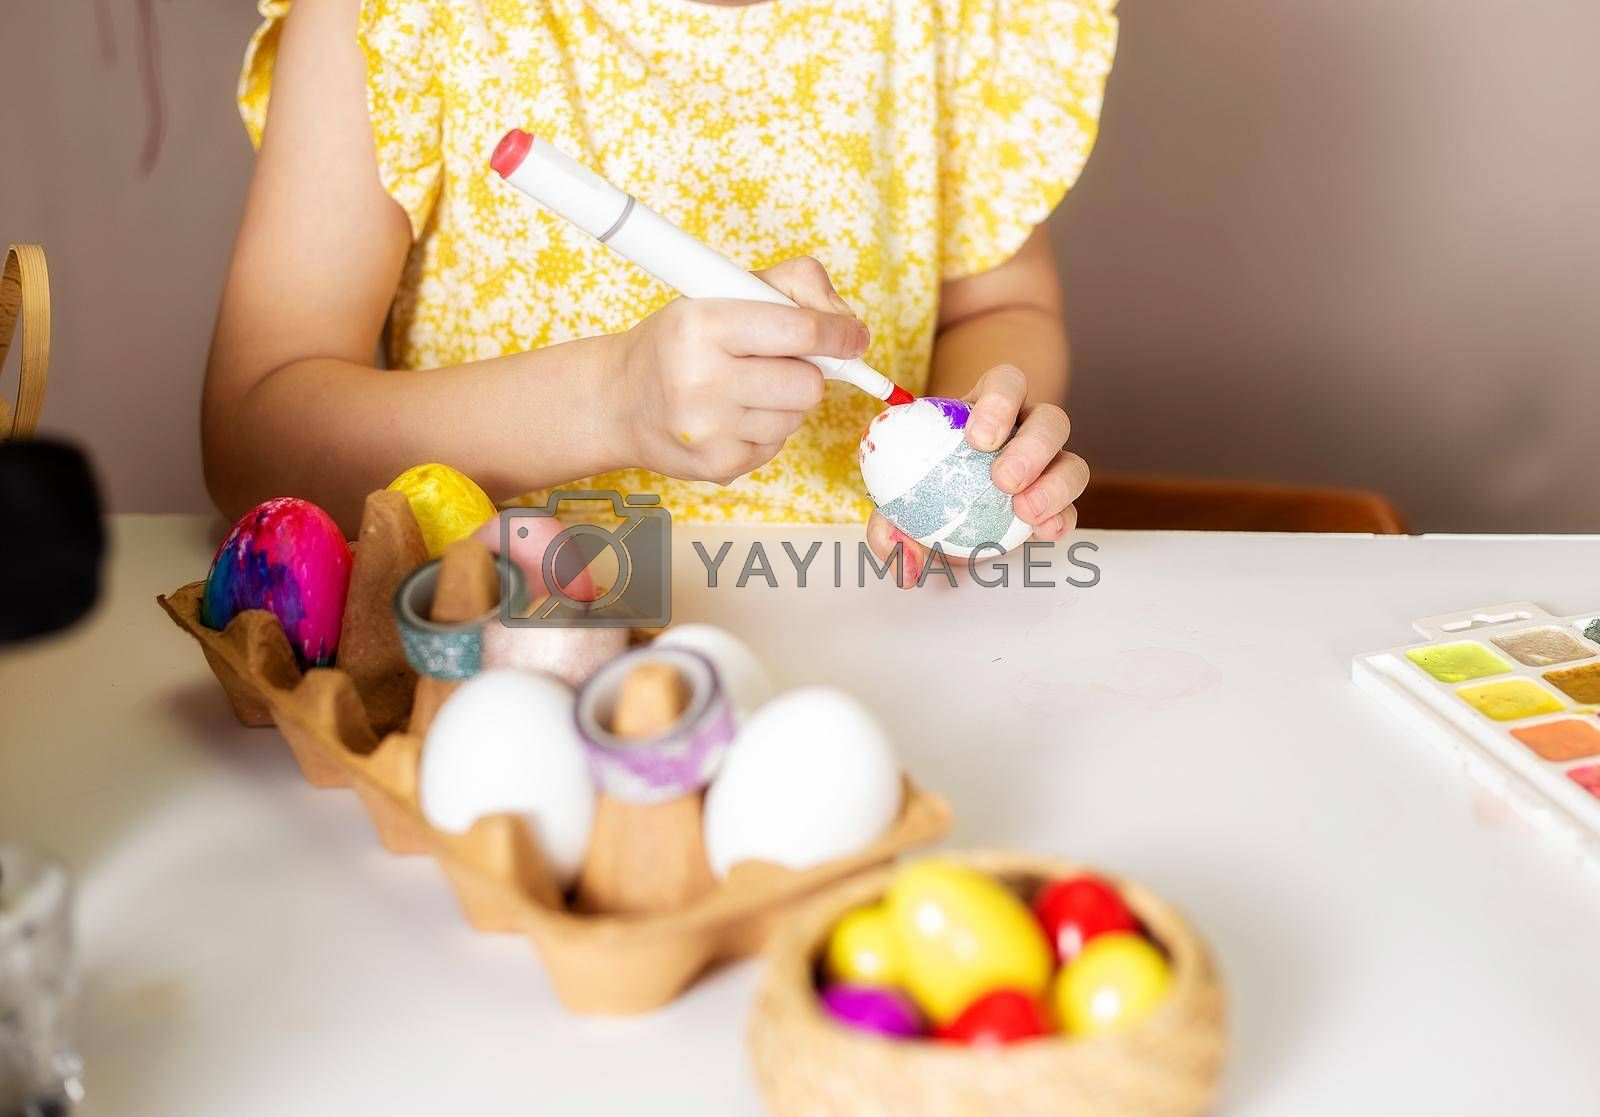 Close-up on the hands of a small girl 5 years old paints eggs with markers by galinasharapova